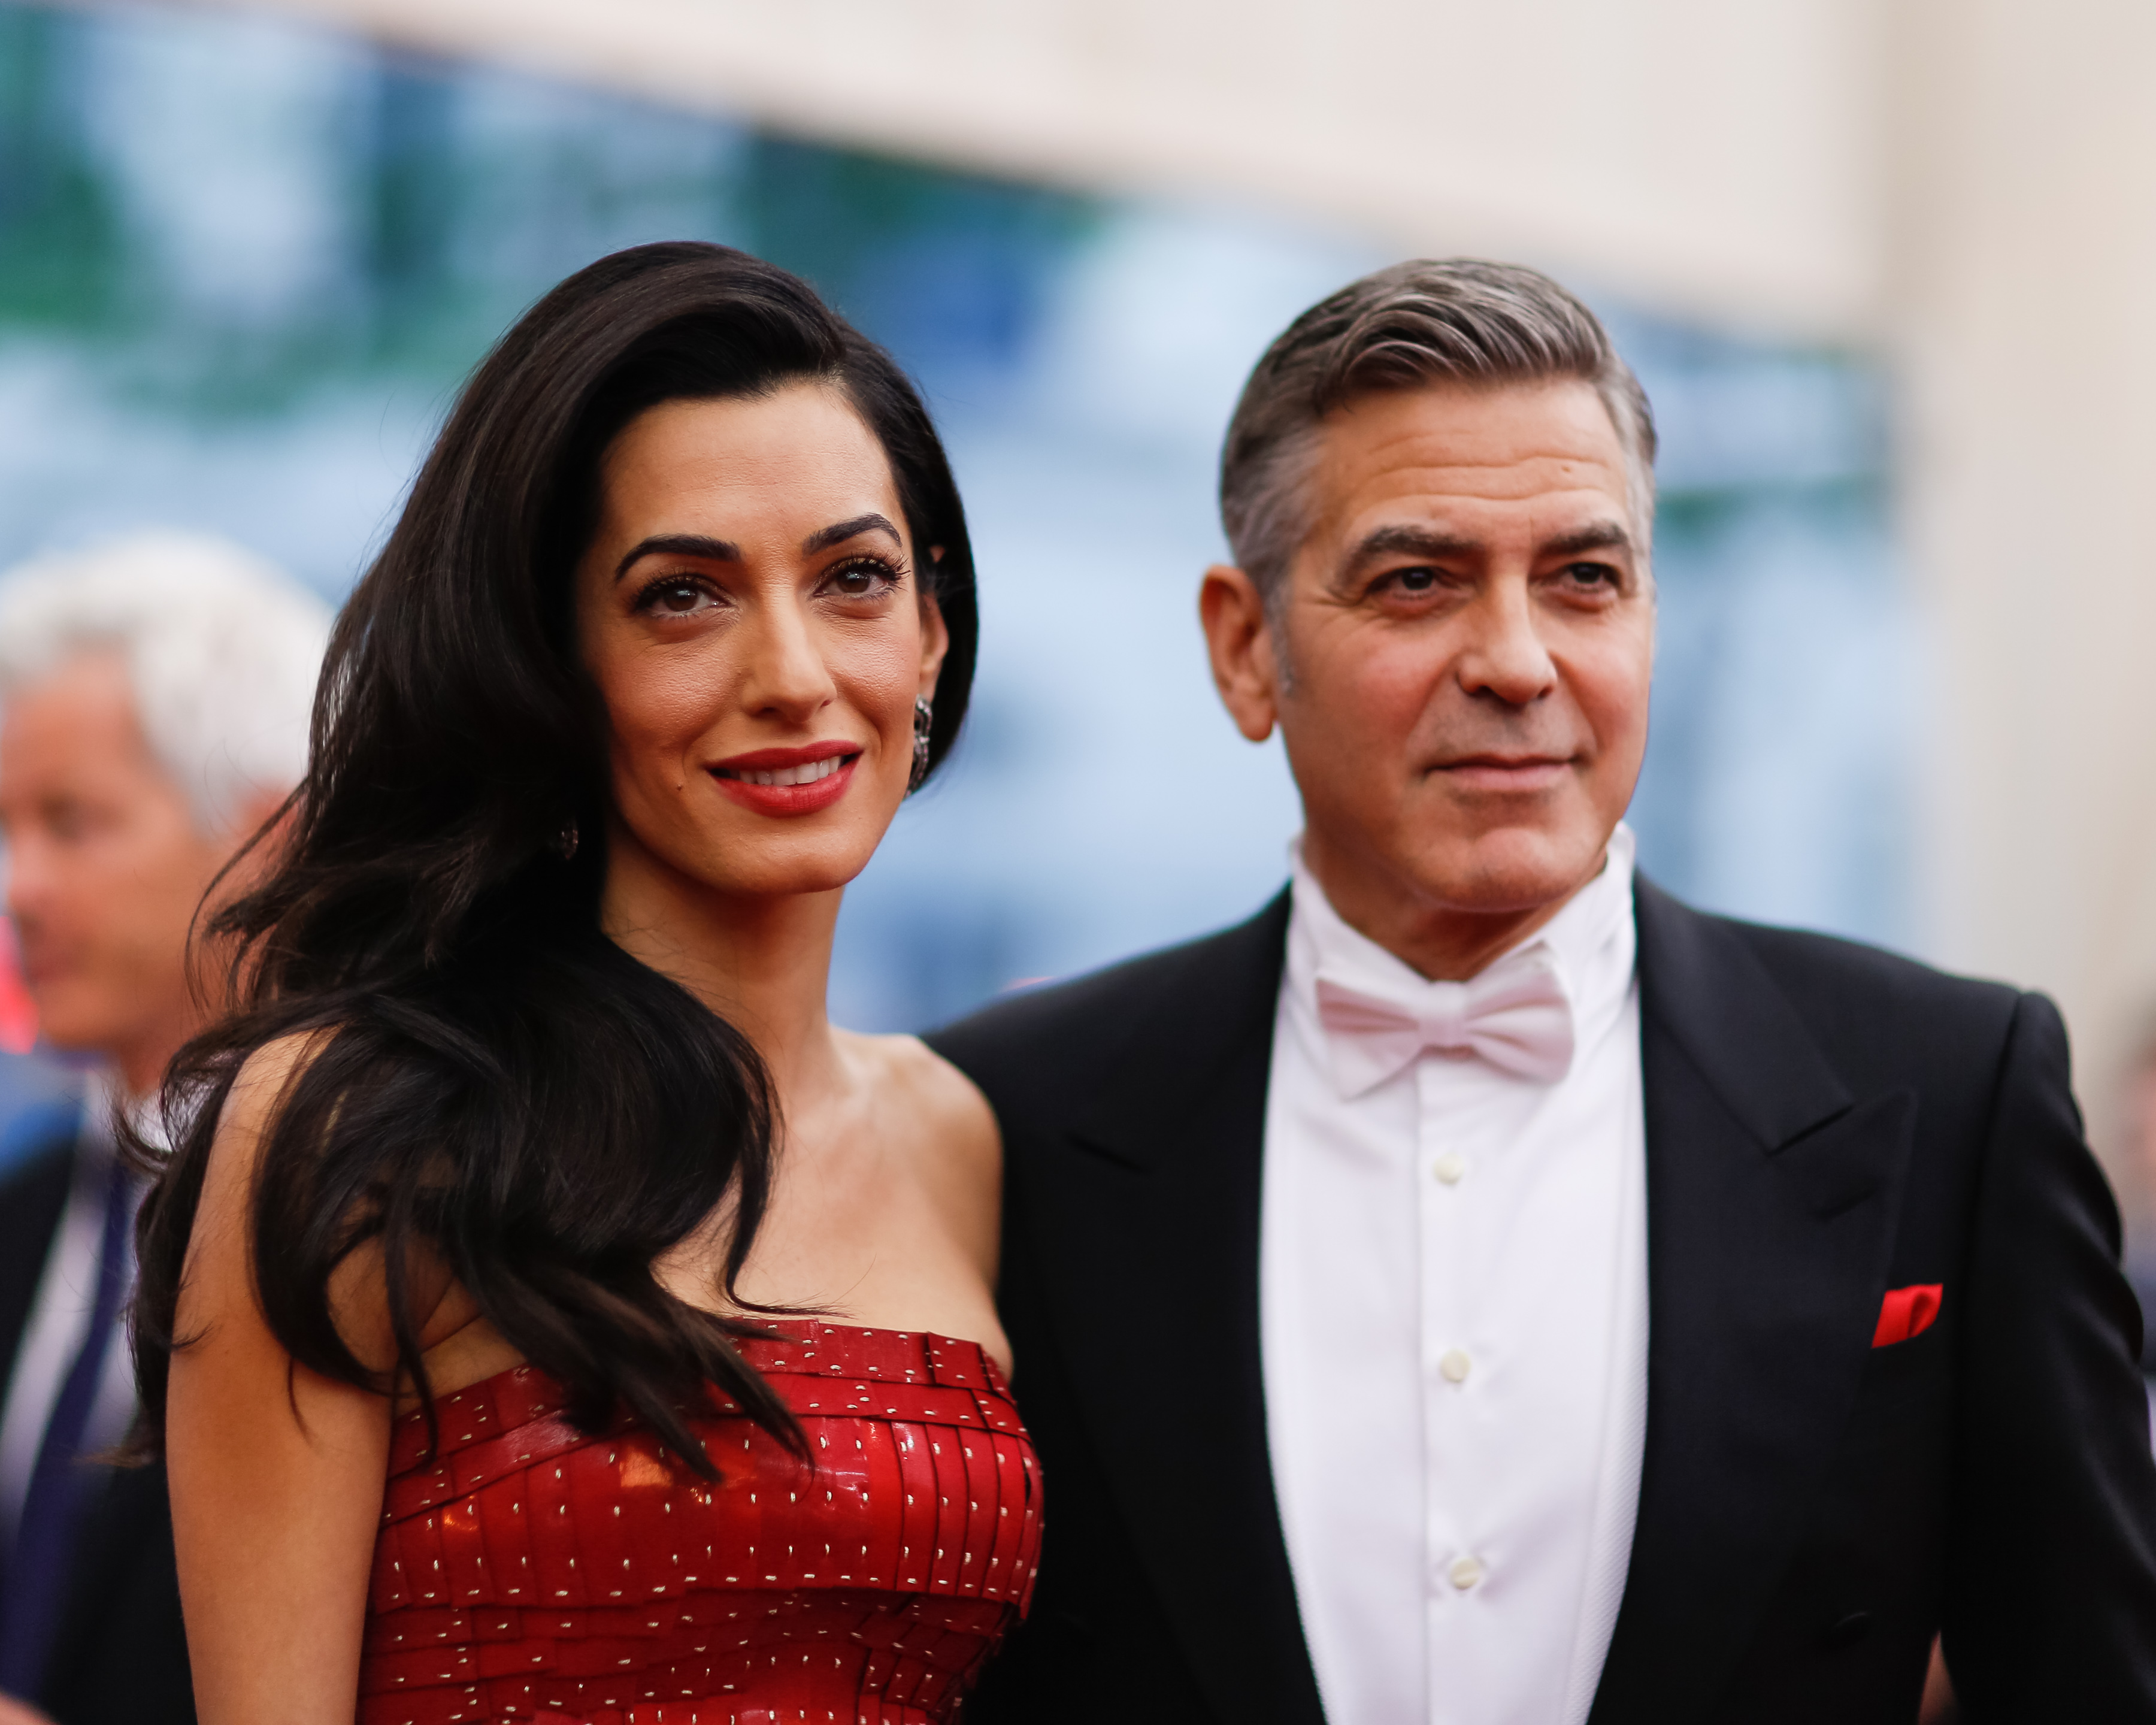 George Clooney and  Amal Alamuddin attend the Met Gala in New York City on May 4, 2015.